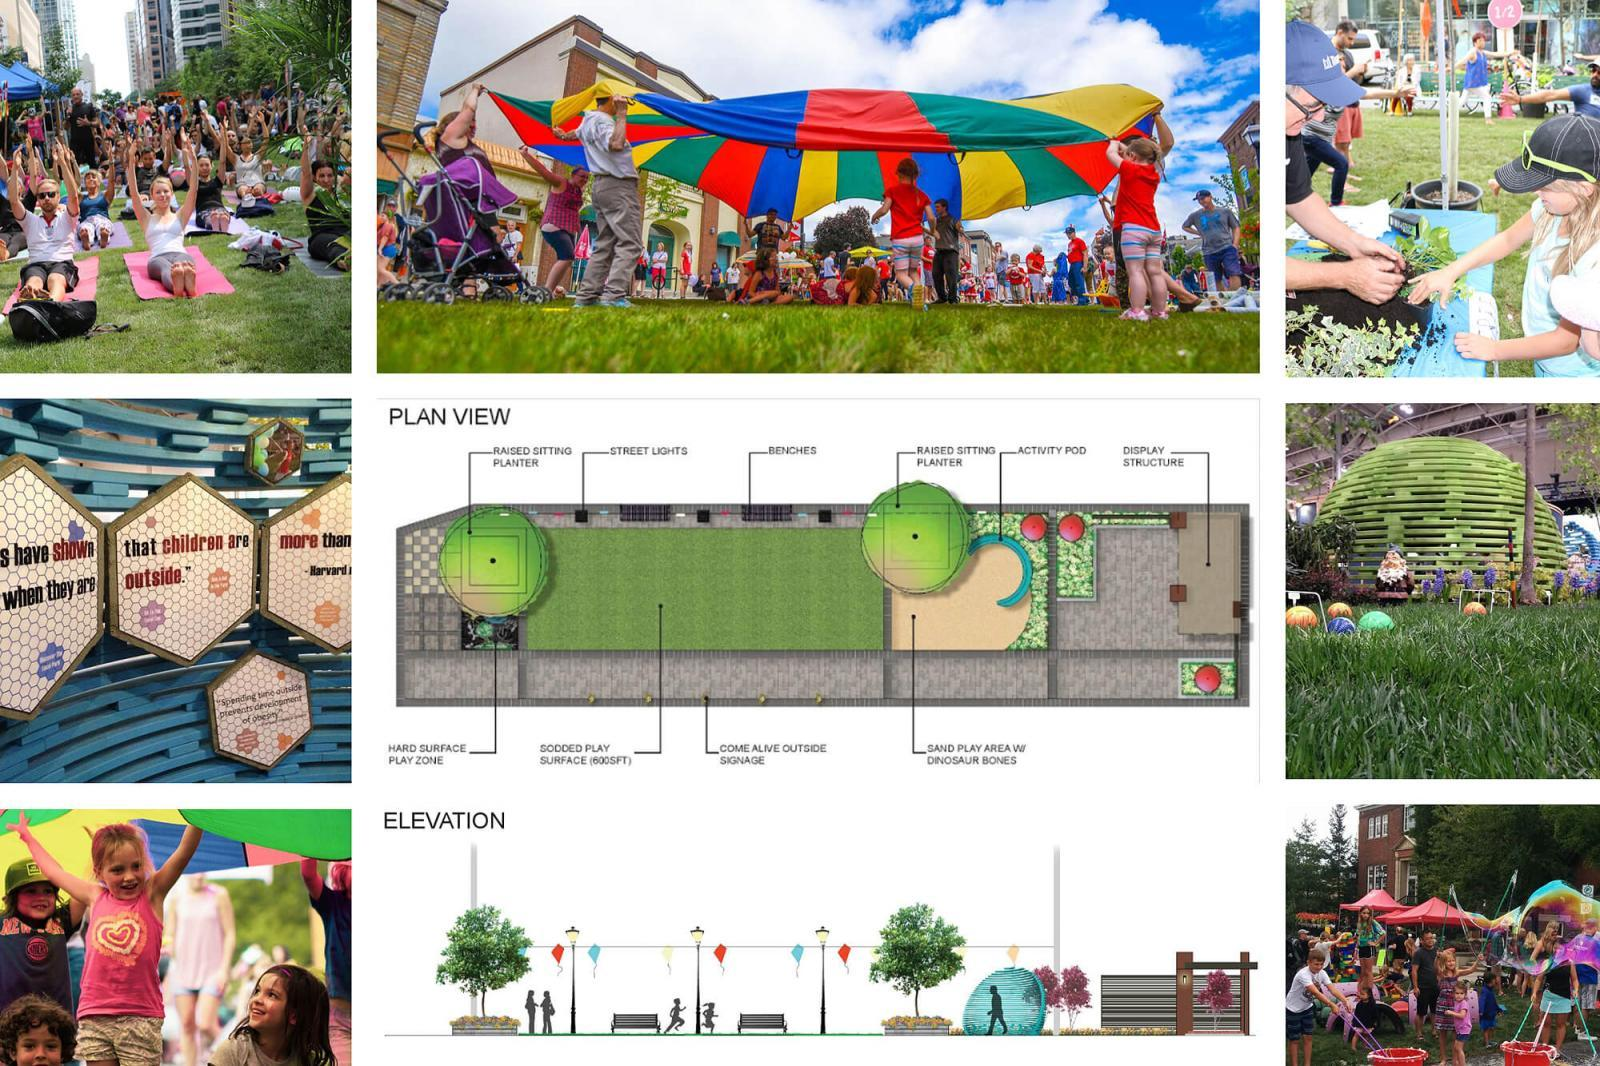 Green Streets Play Zone at Canada Blooms 2019